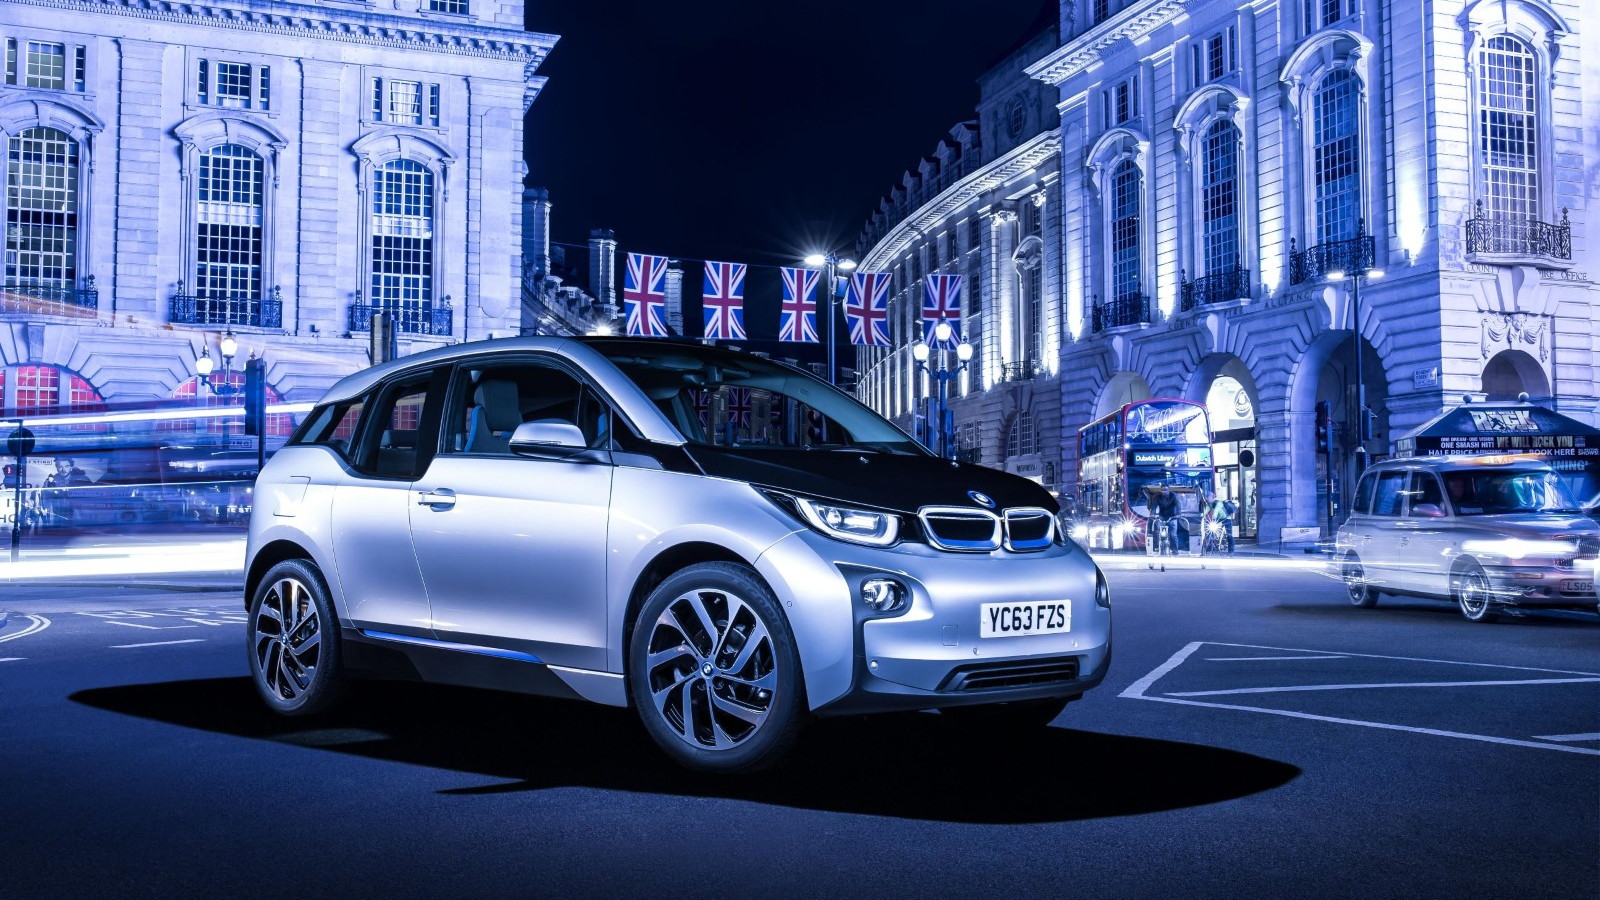 2014 BMW i3 in London